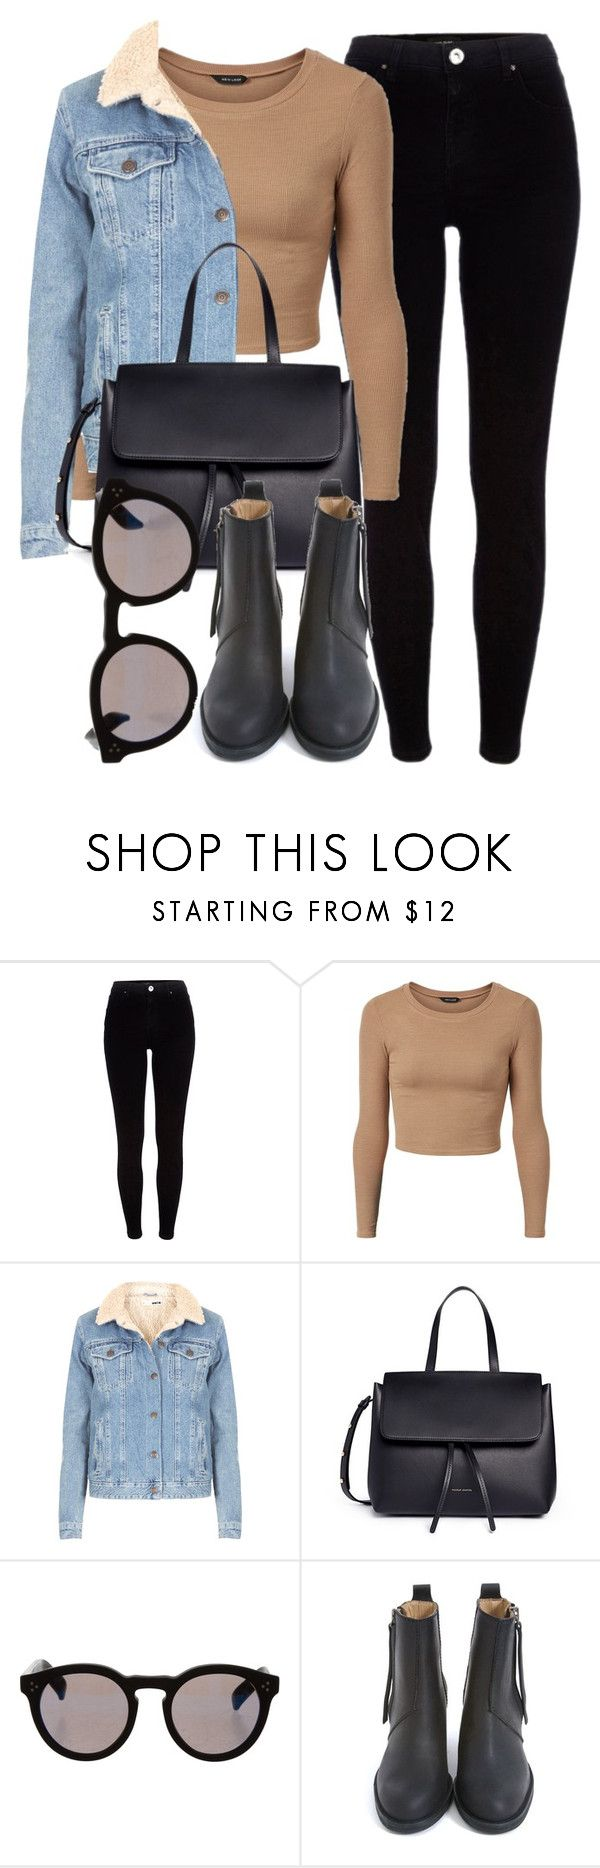 """""""Untitled #6330"""" by laurenmboot ❤ liked on Polyvore featuring River Island, Topshop, Mansur Gavriel, Illesteva and Acne Studios"""